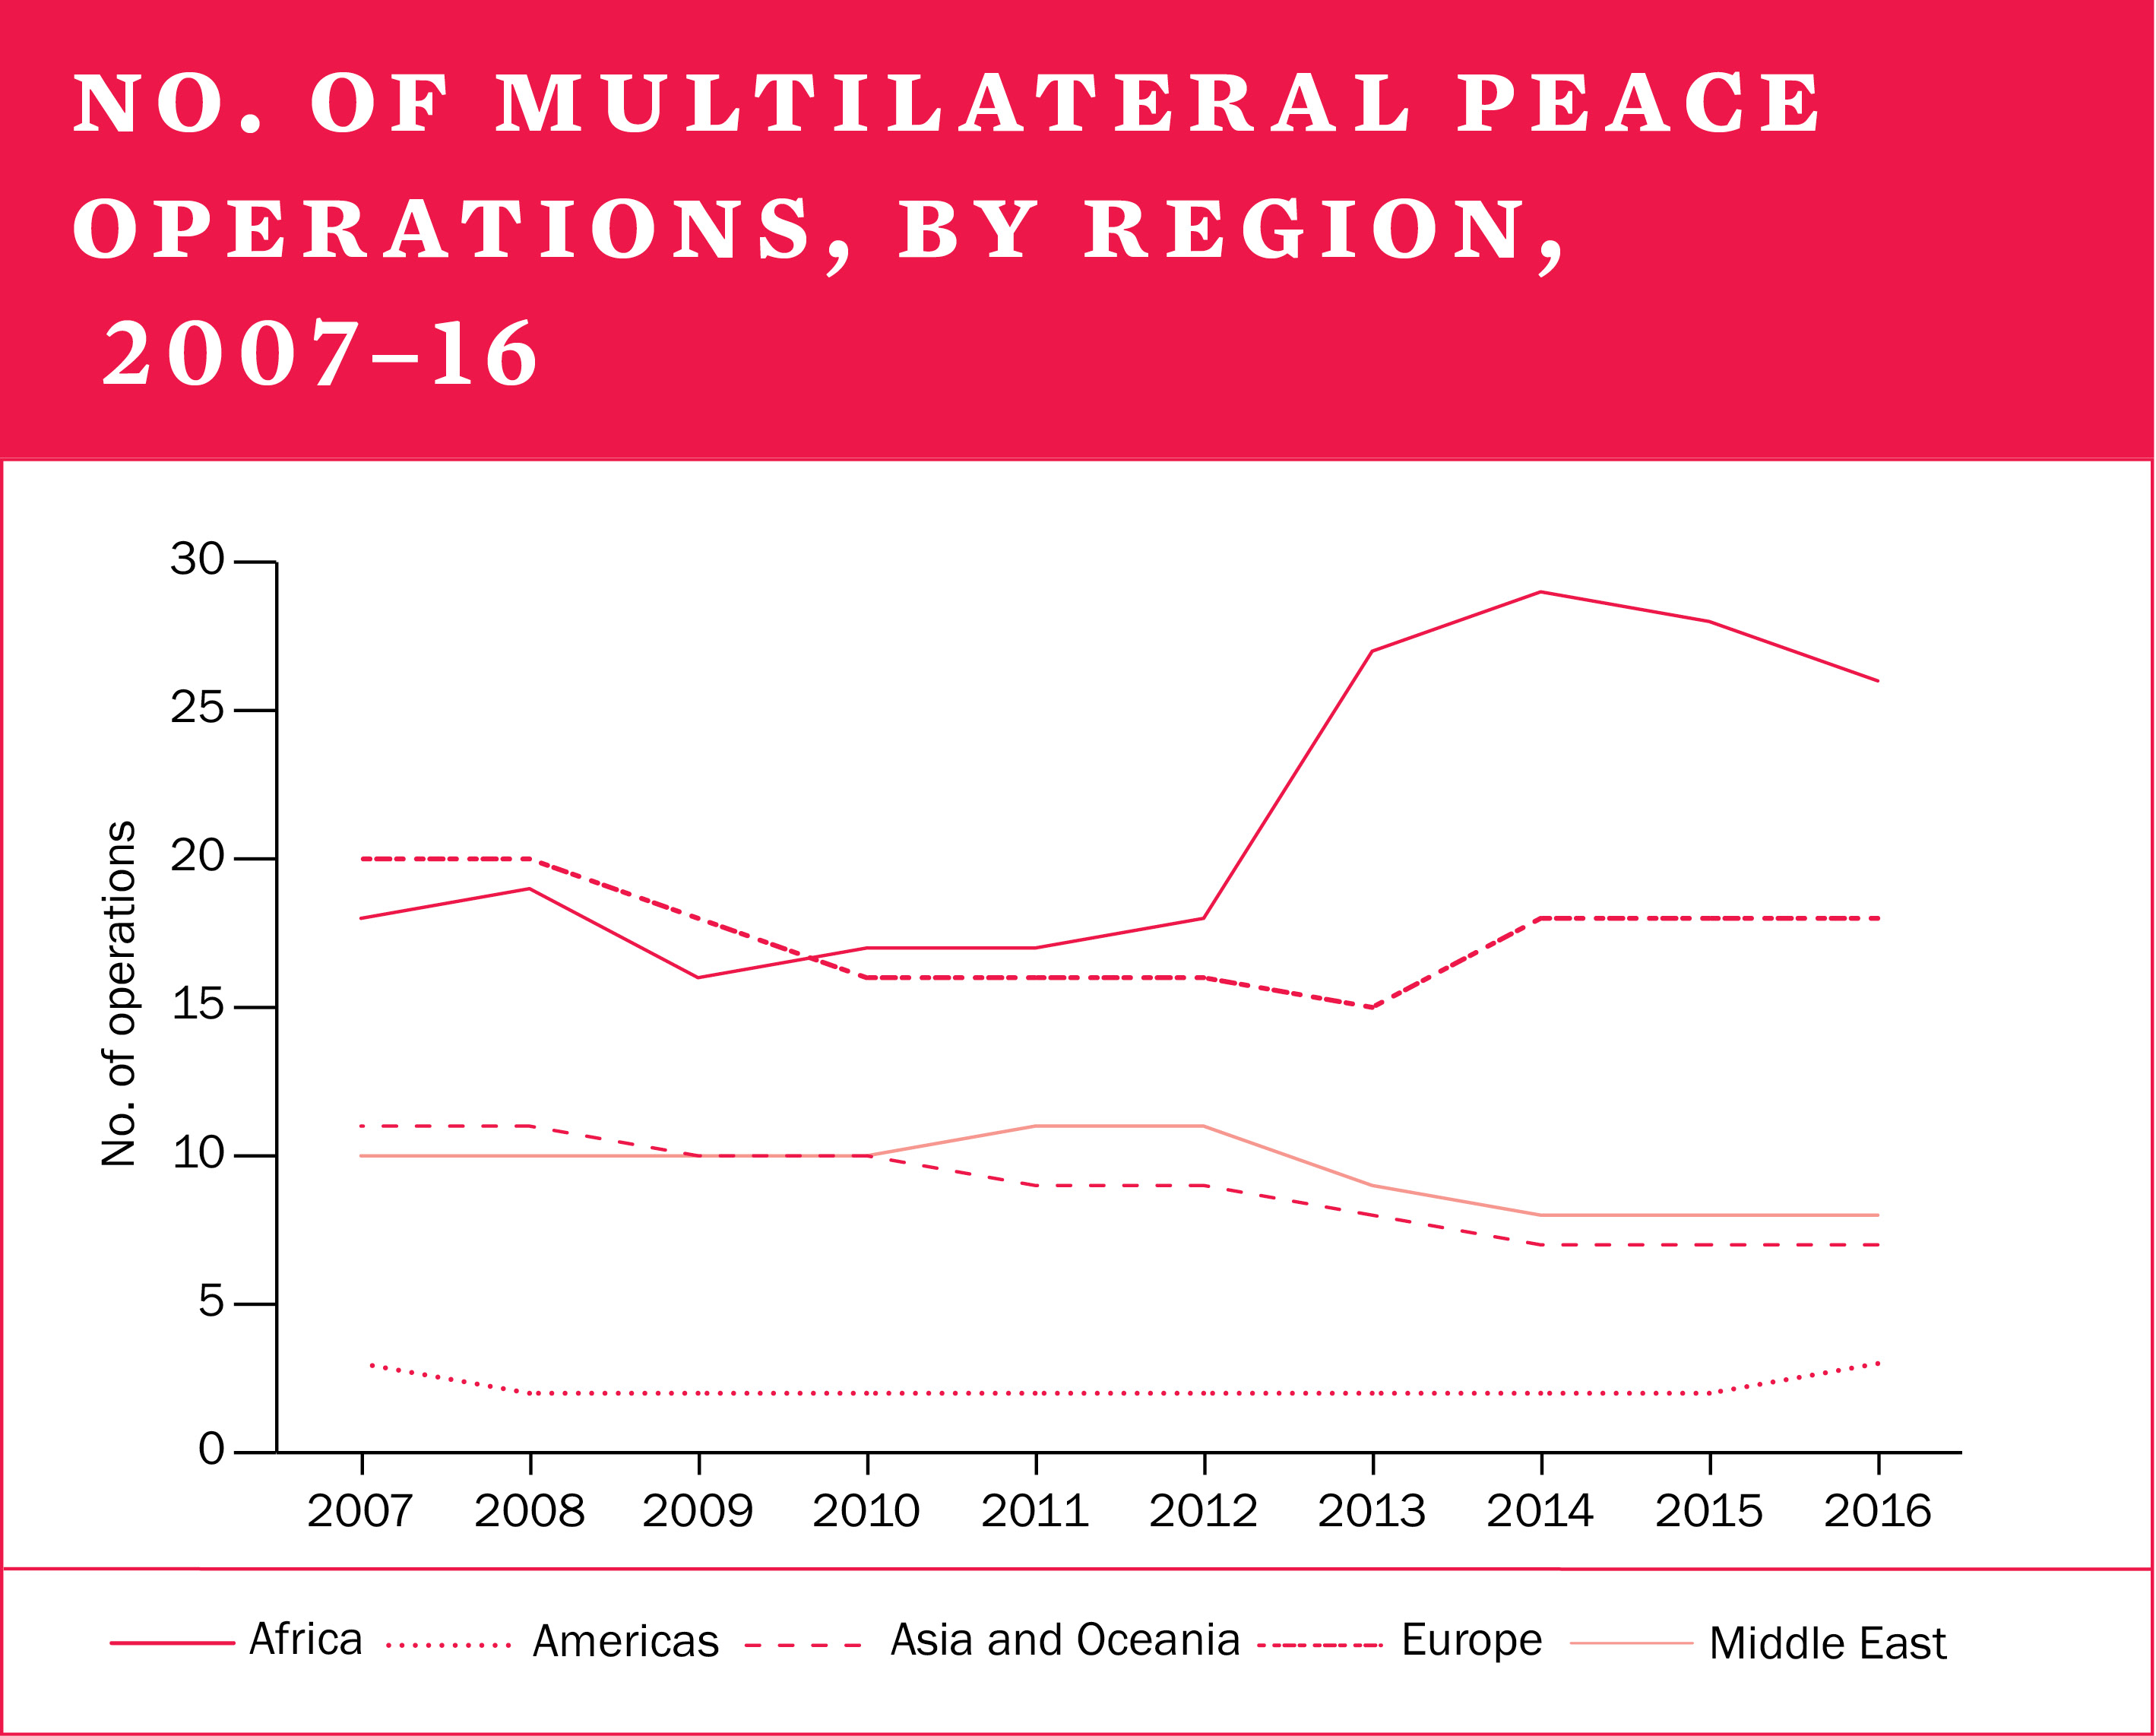 No. of multilateral peace operations, by region, 2007-16